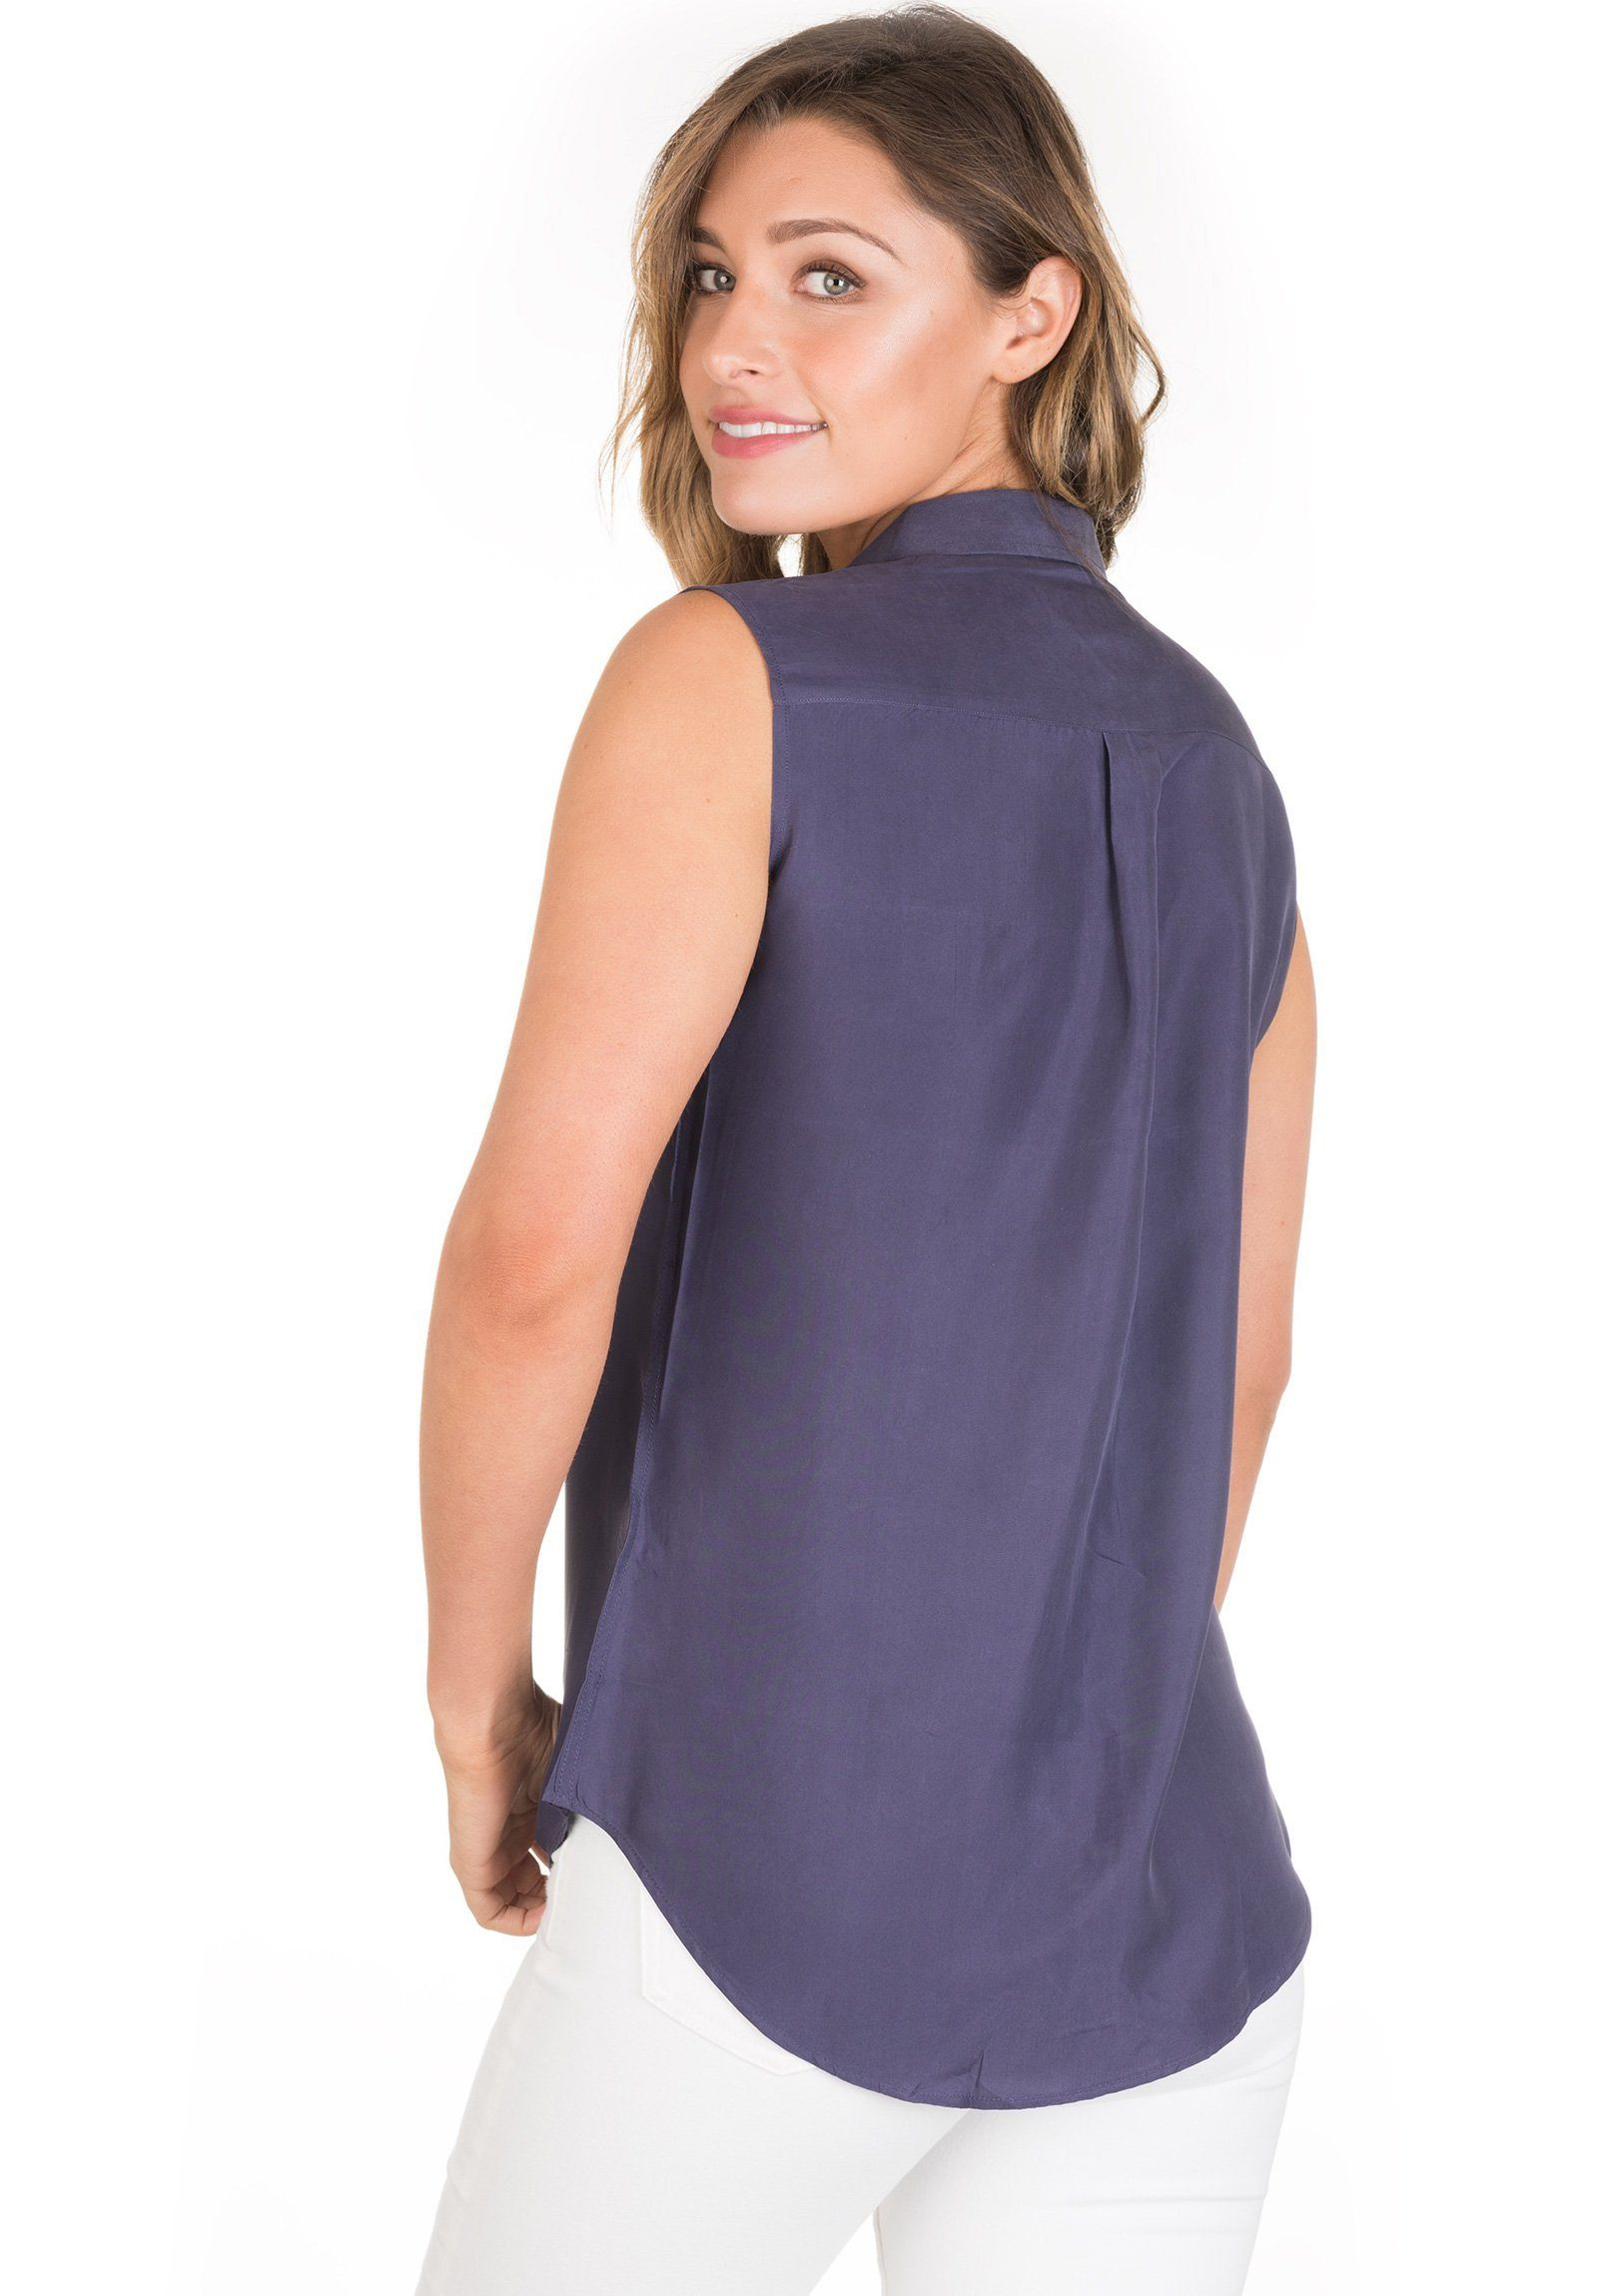 Aura Silk Blue, Sand-washed sleeveless shirt with pockets